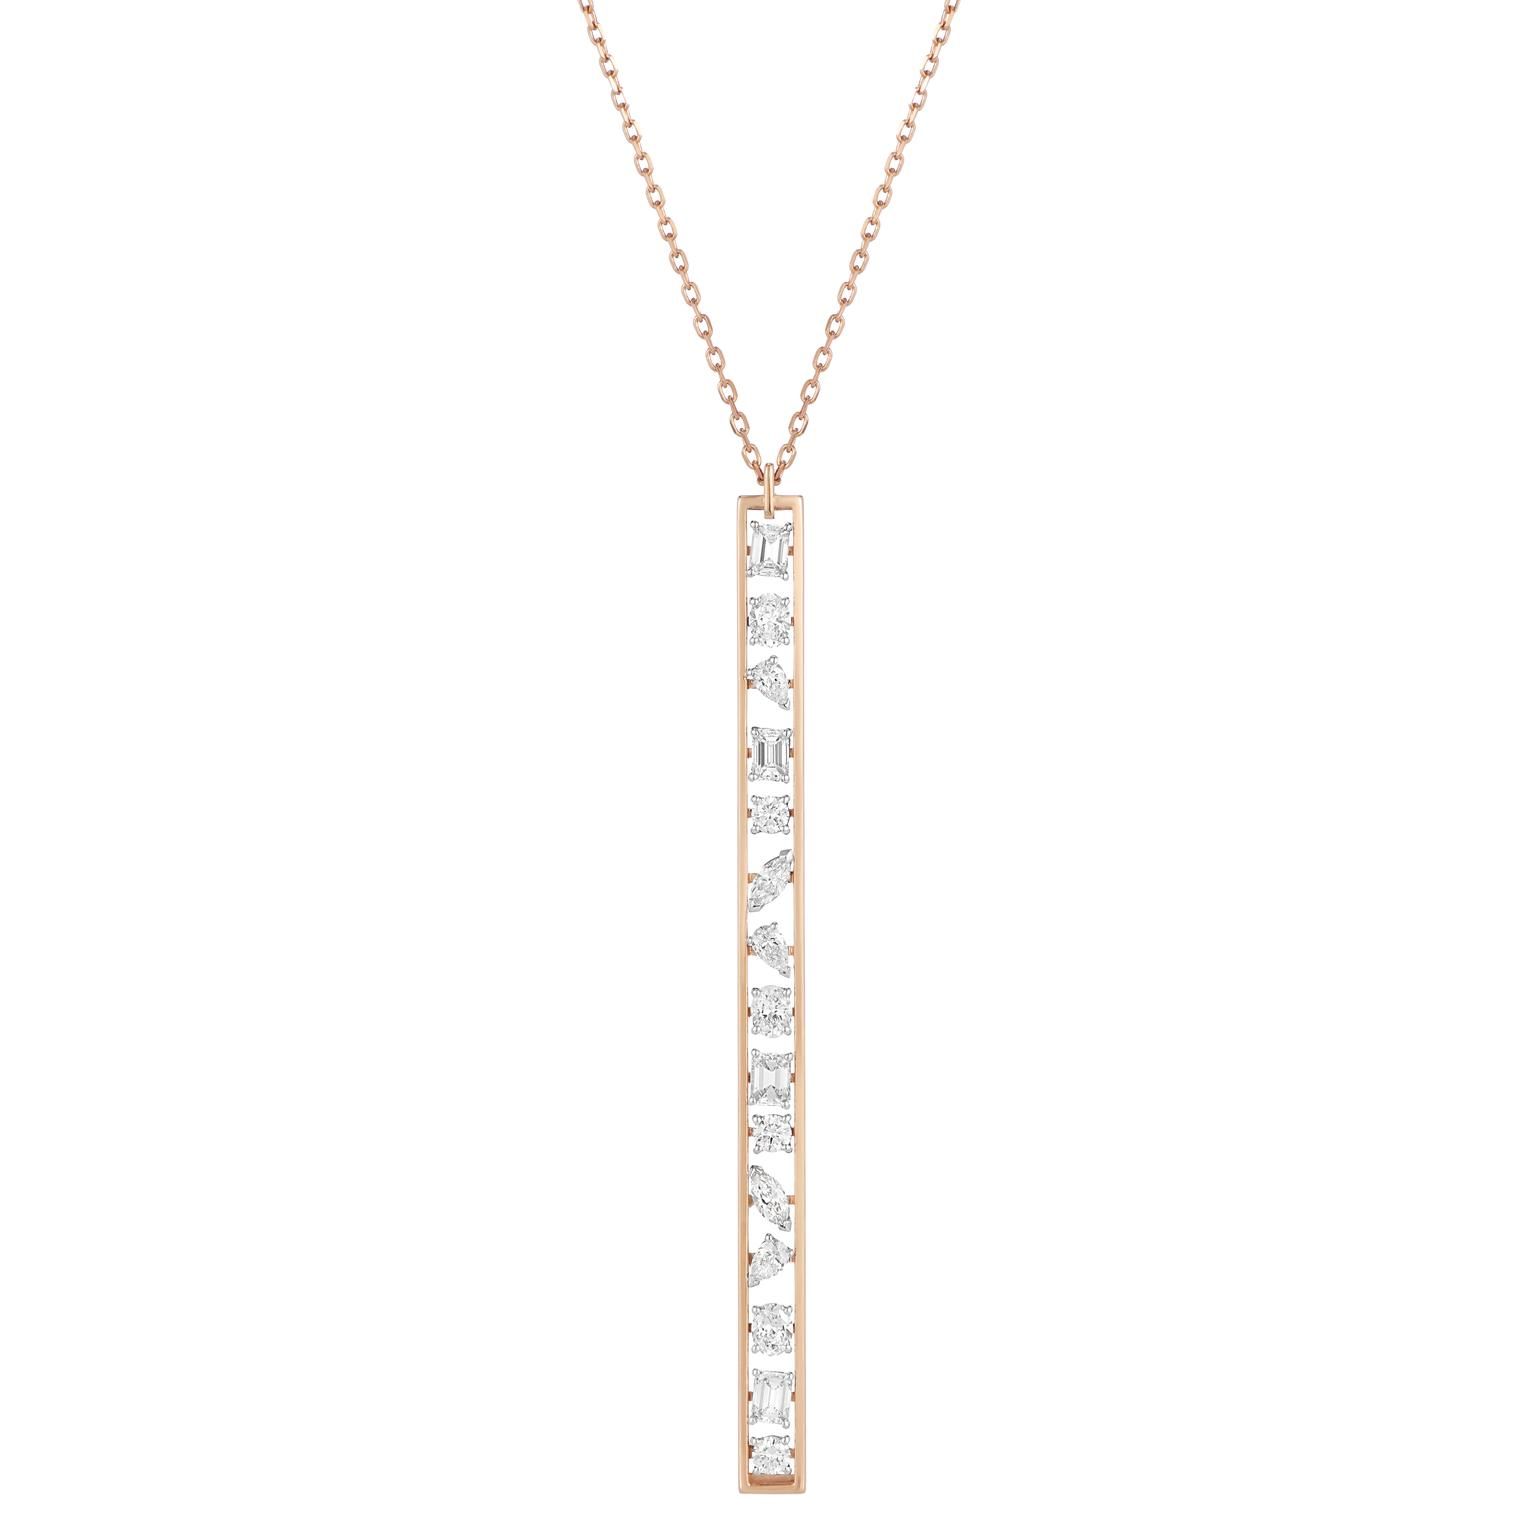 Nour By Jahan - Pendant from the Jolie Collection